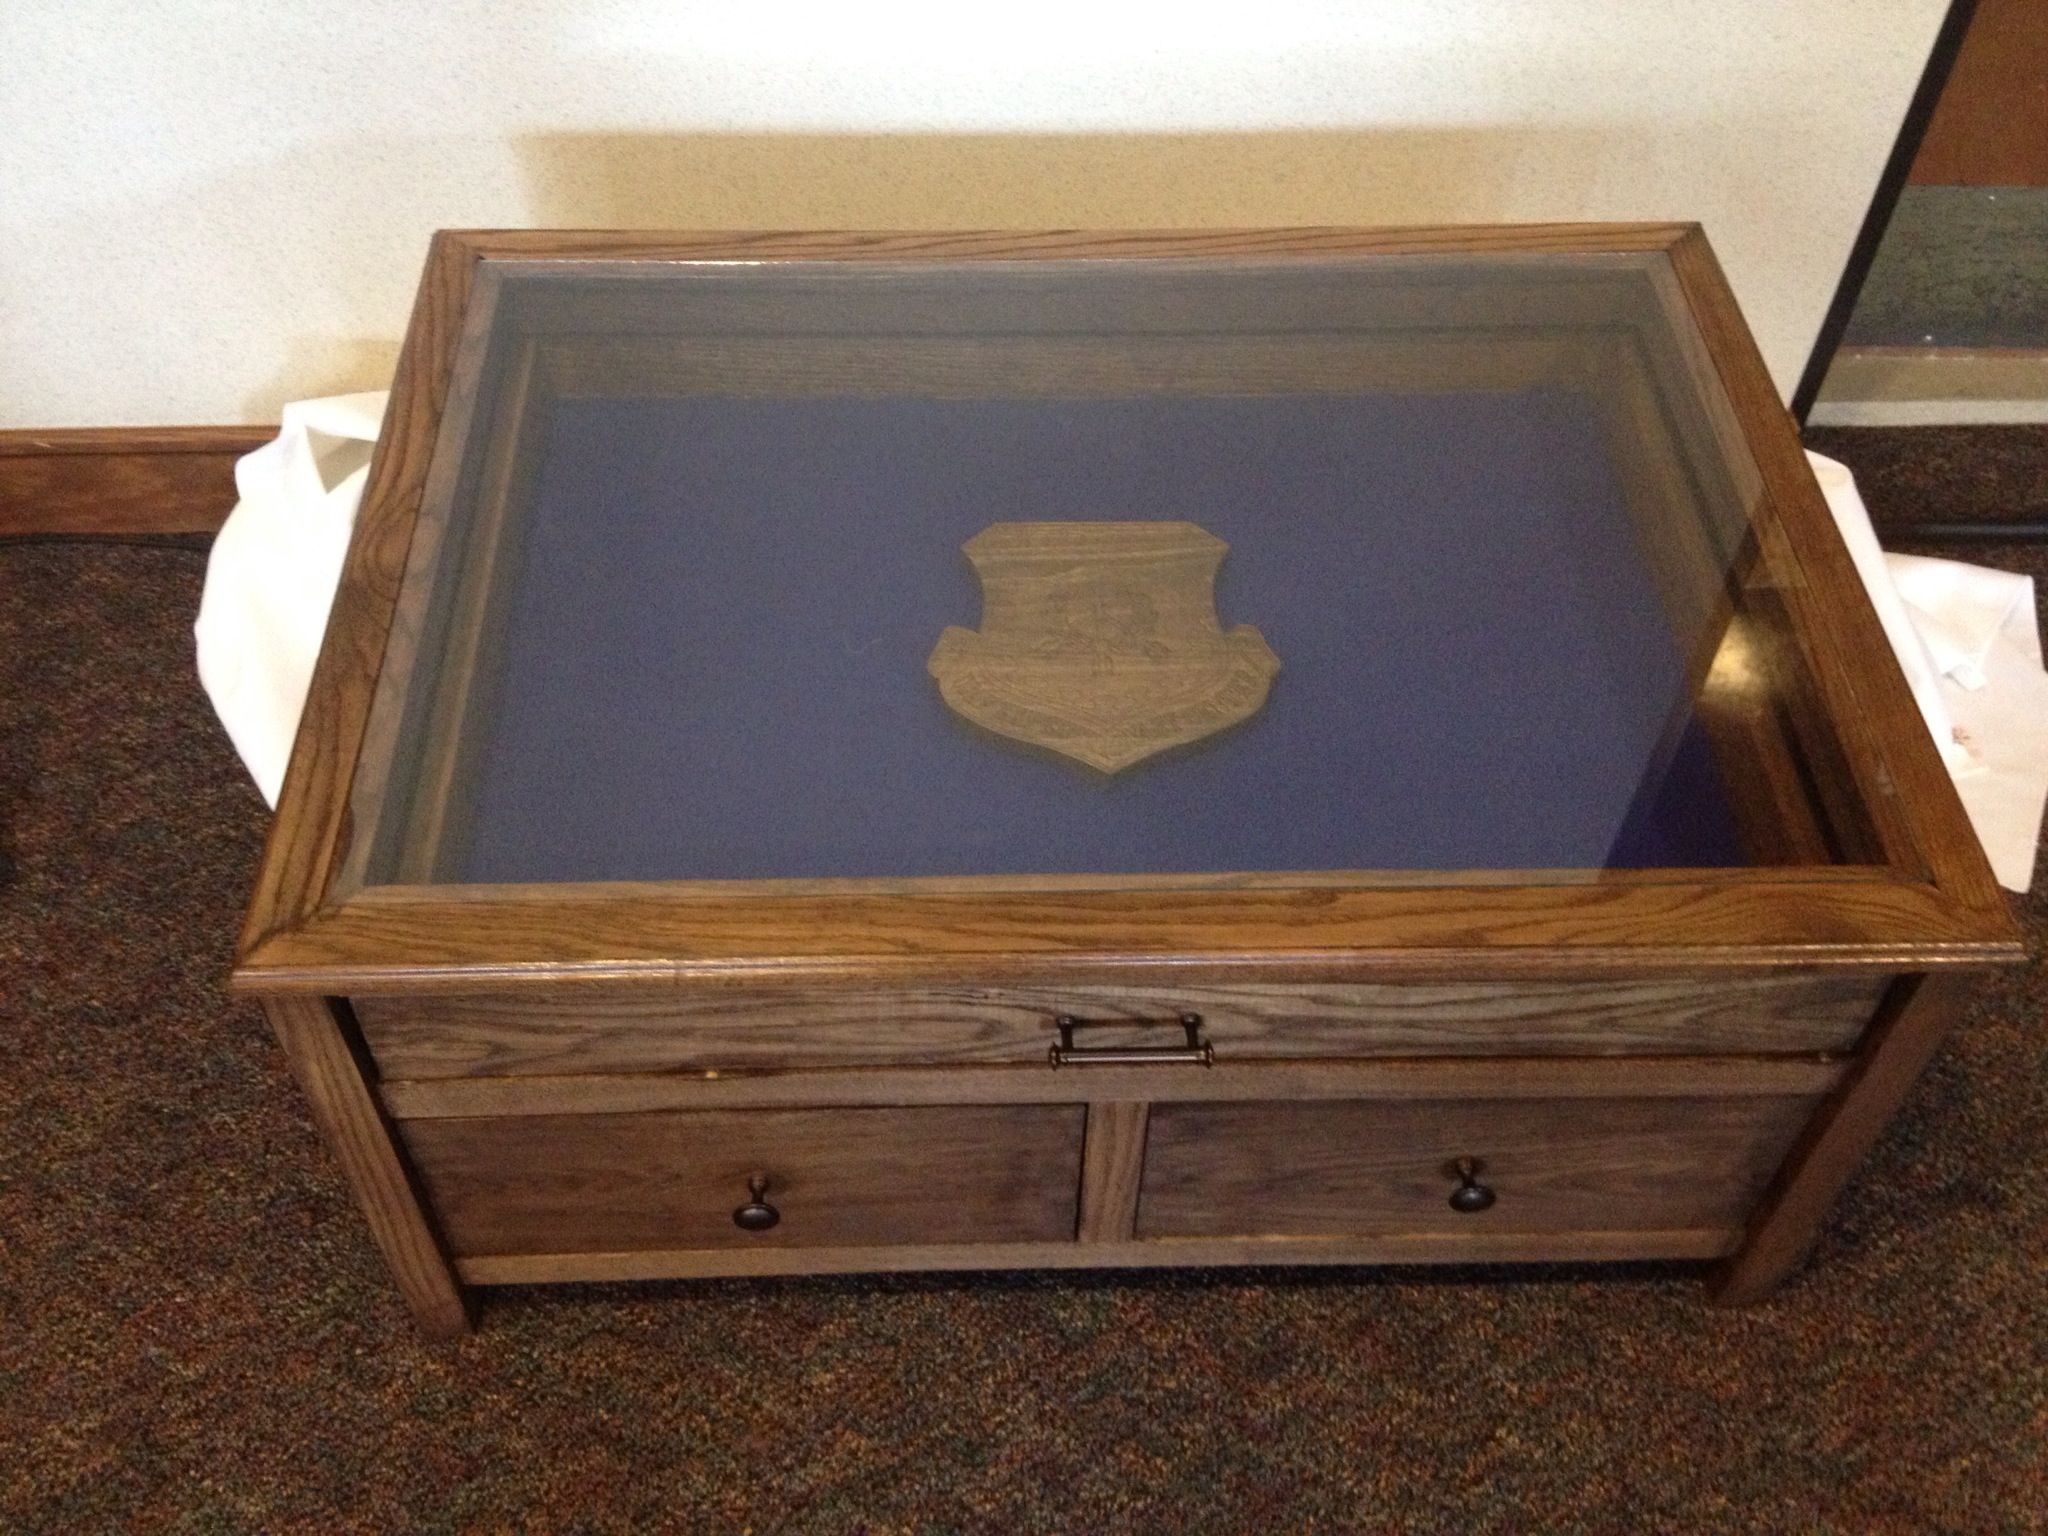 Glass top coffee table to display military coins